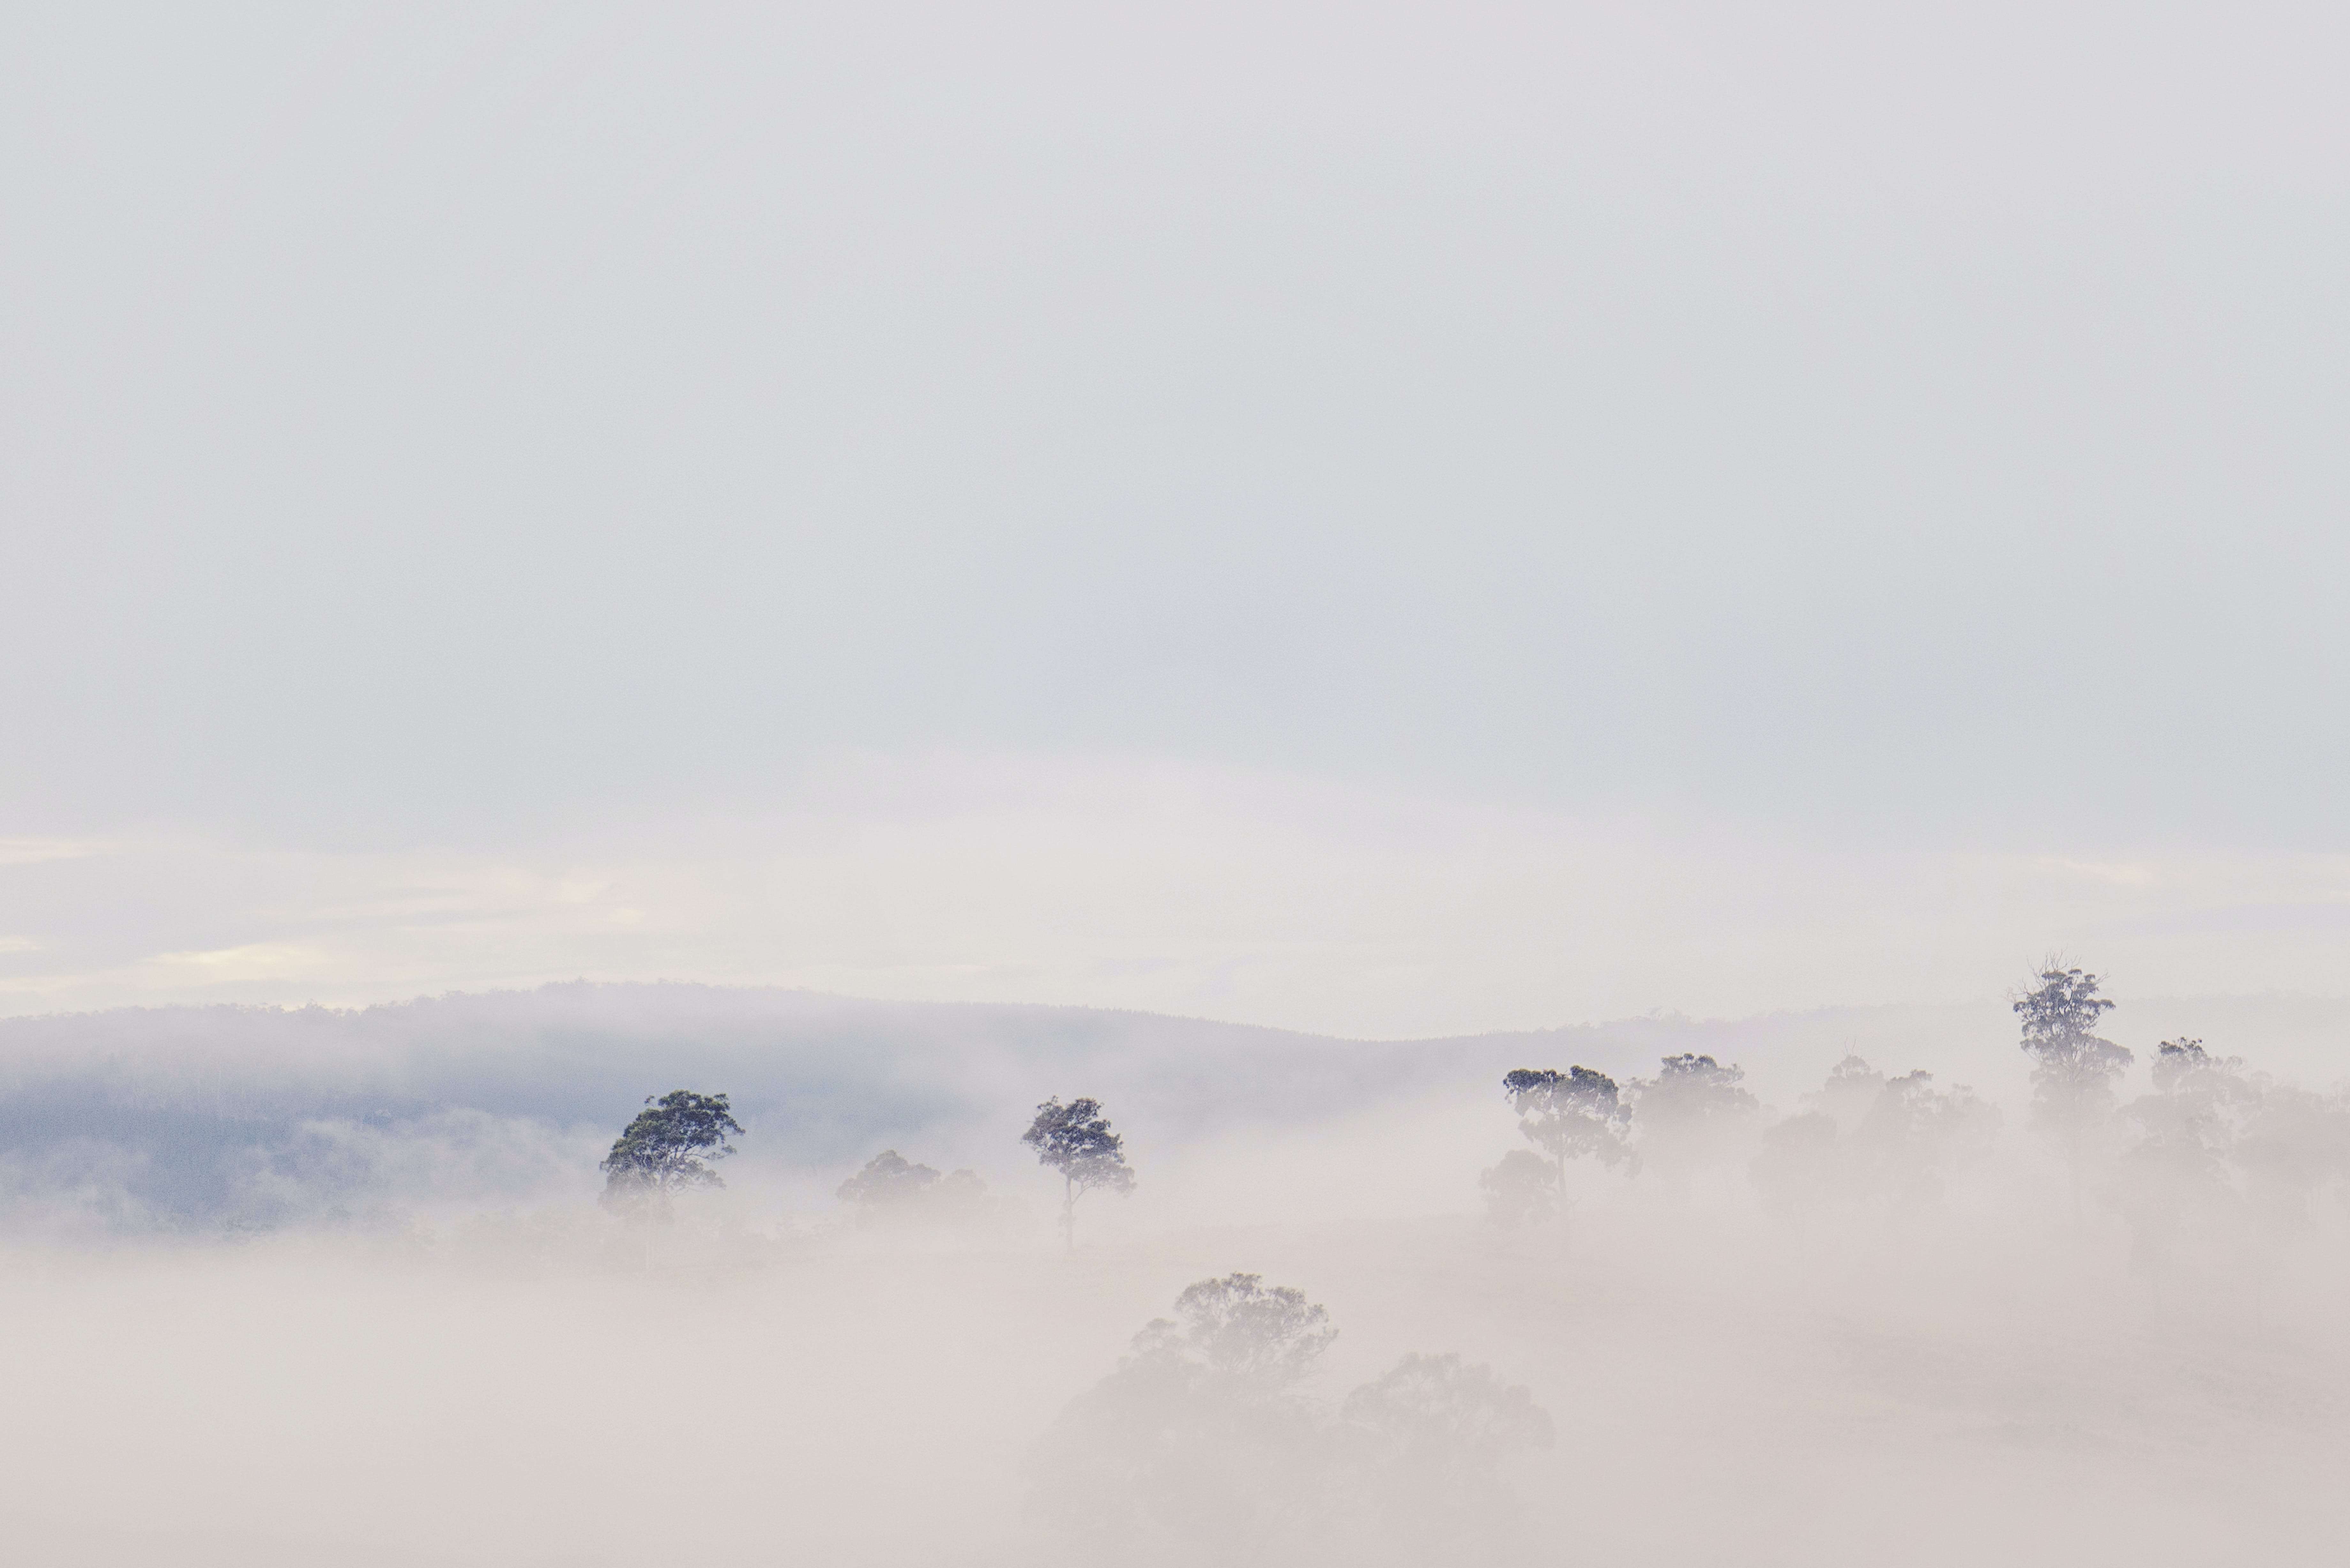 Aerial View Photography of Trees Covered by Fog